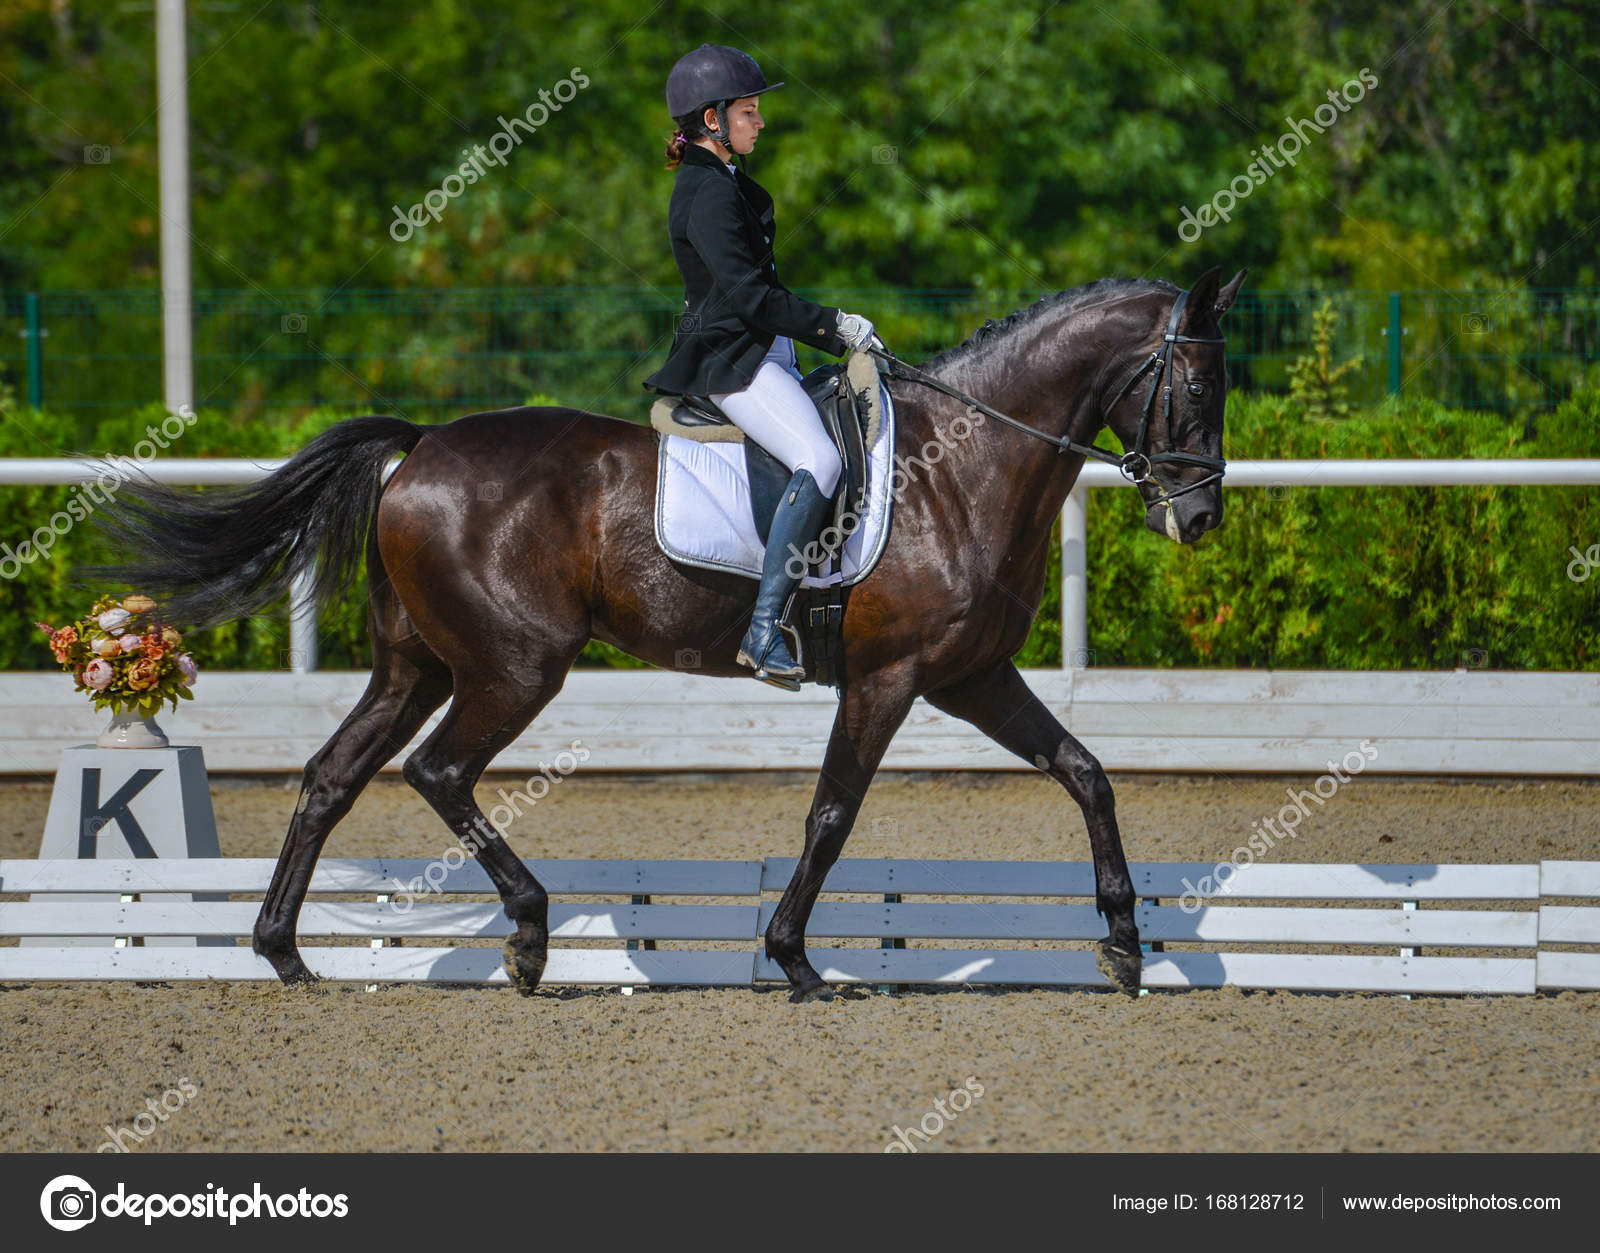 Young Elegant Rider Woman And Black Horse Dressage Test On Equestrian Competition Advanced Dressage Test Stock Photo C Martanovak 168128712